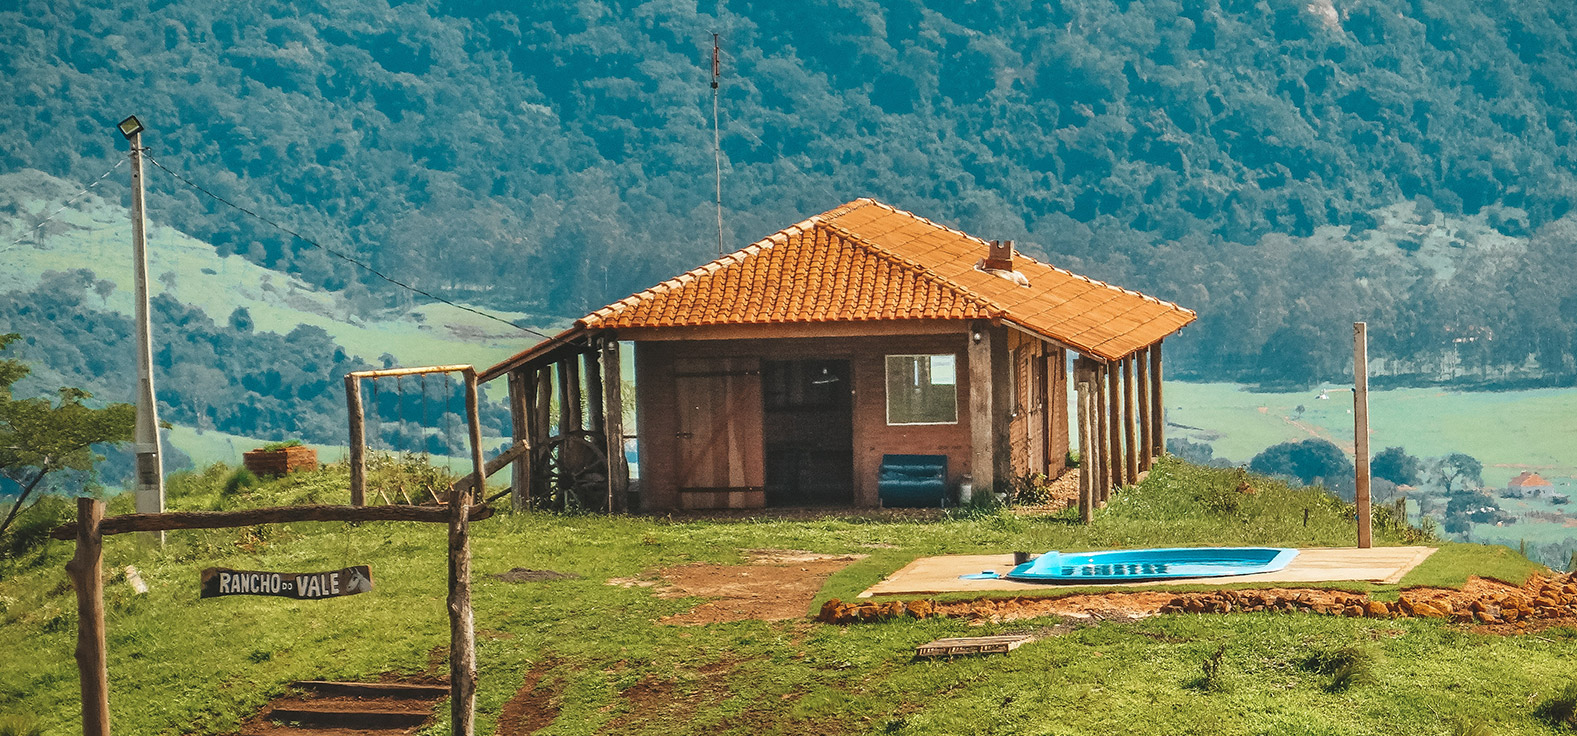 Rancho do Vale em Torrinha | Portal Serra do Itaquerí